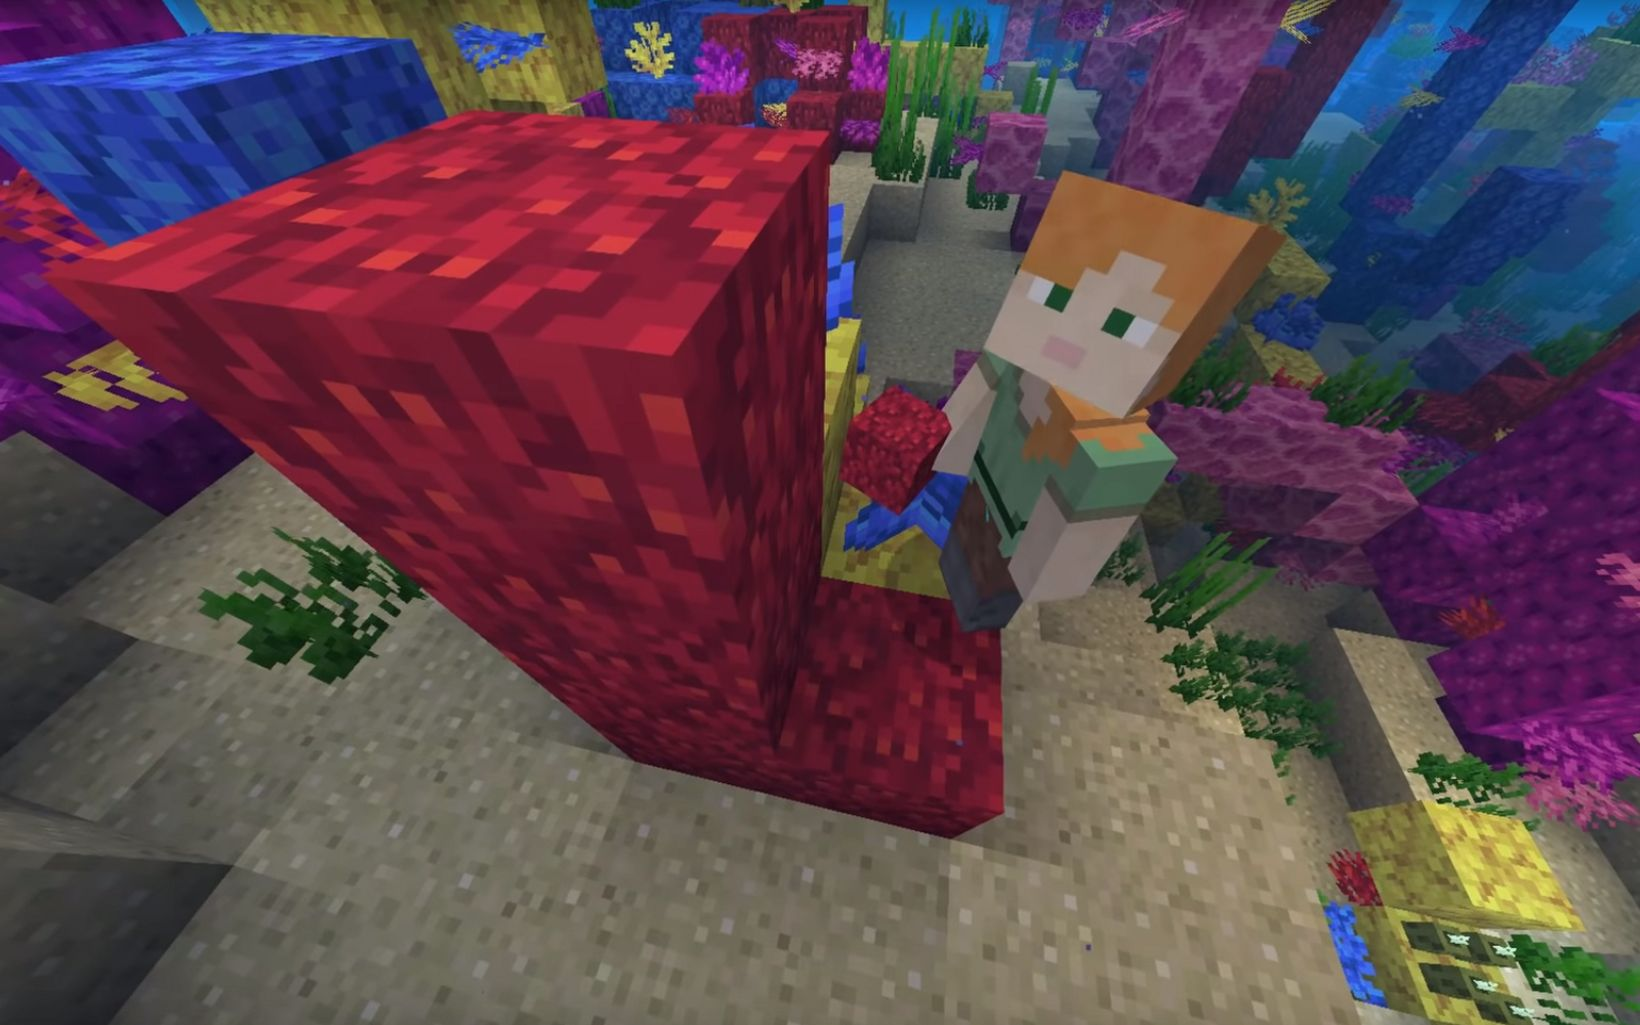 Minecraft's in-game oceans include five new coral reefs to build – staghorn, brain, fire, bubble and tube.